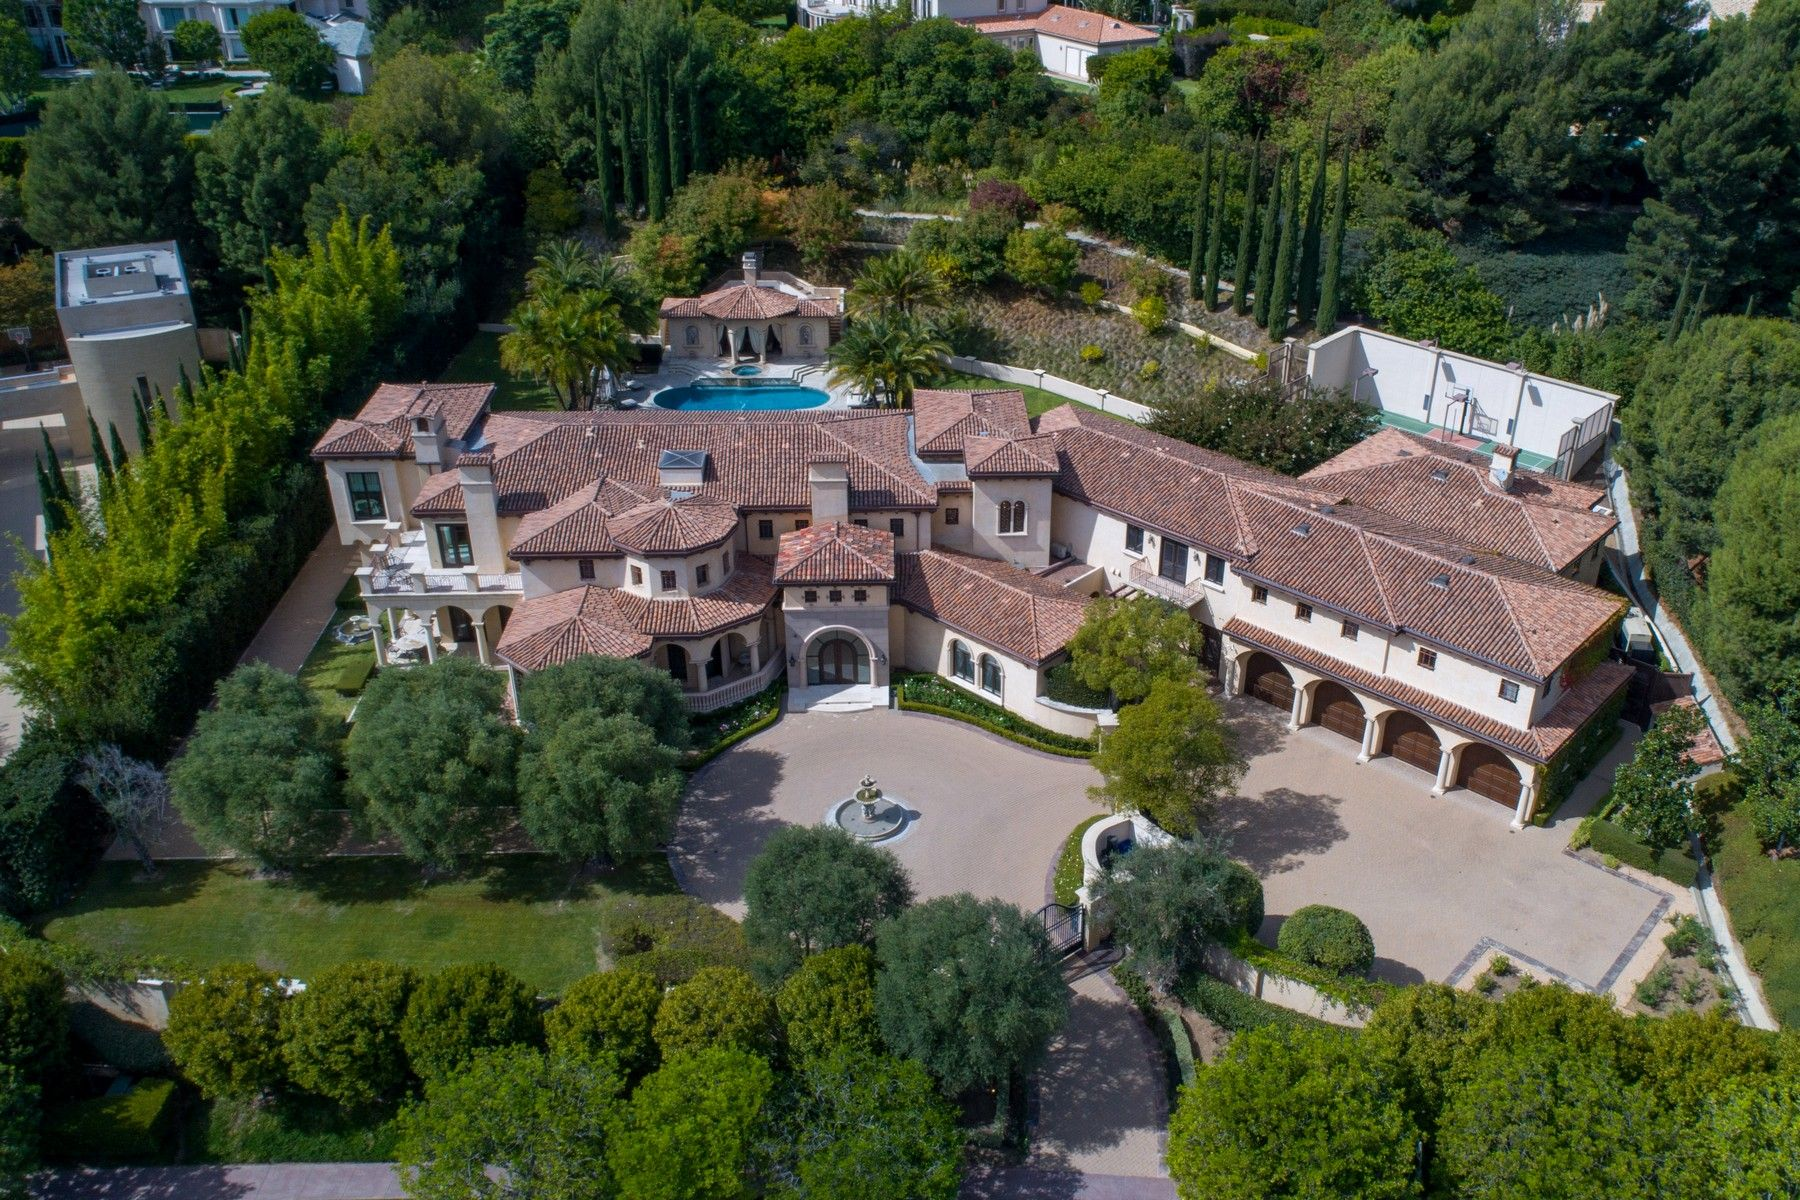 Single Family Homes for Sale at 44 Beverly Park Circle Beverly Hills, California 90210 United States